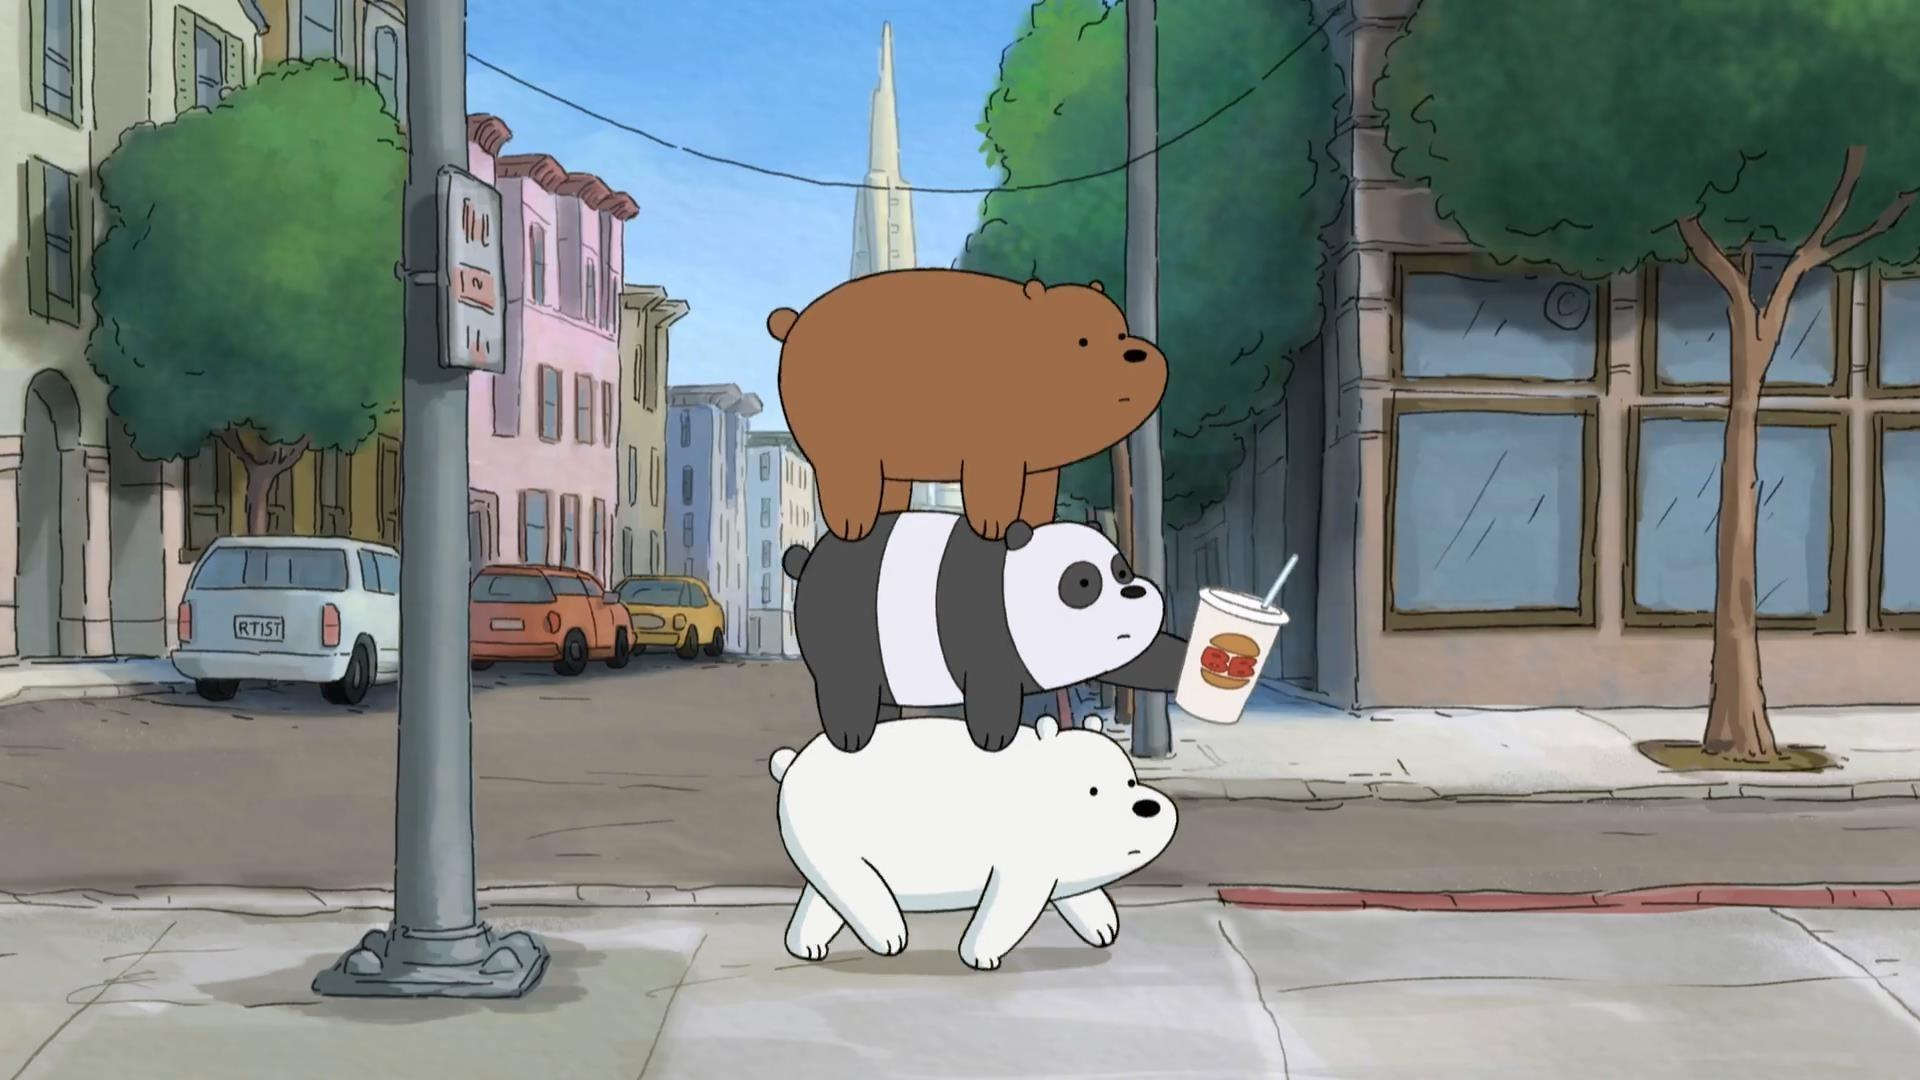 Laptop We Bare Bears Hd Wallpapers - Wallpaper Cave